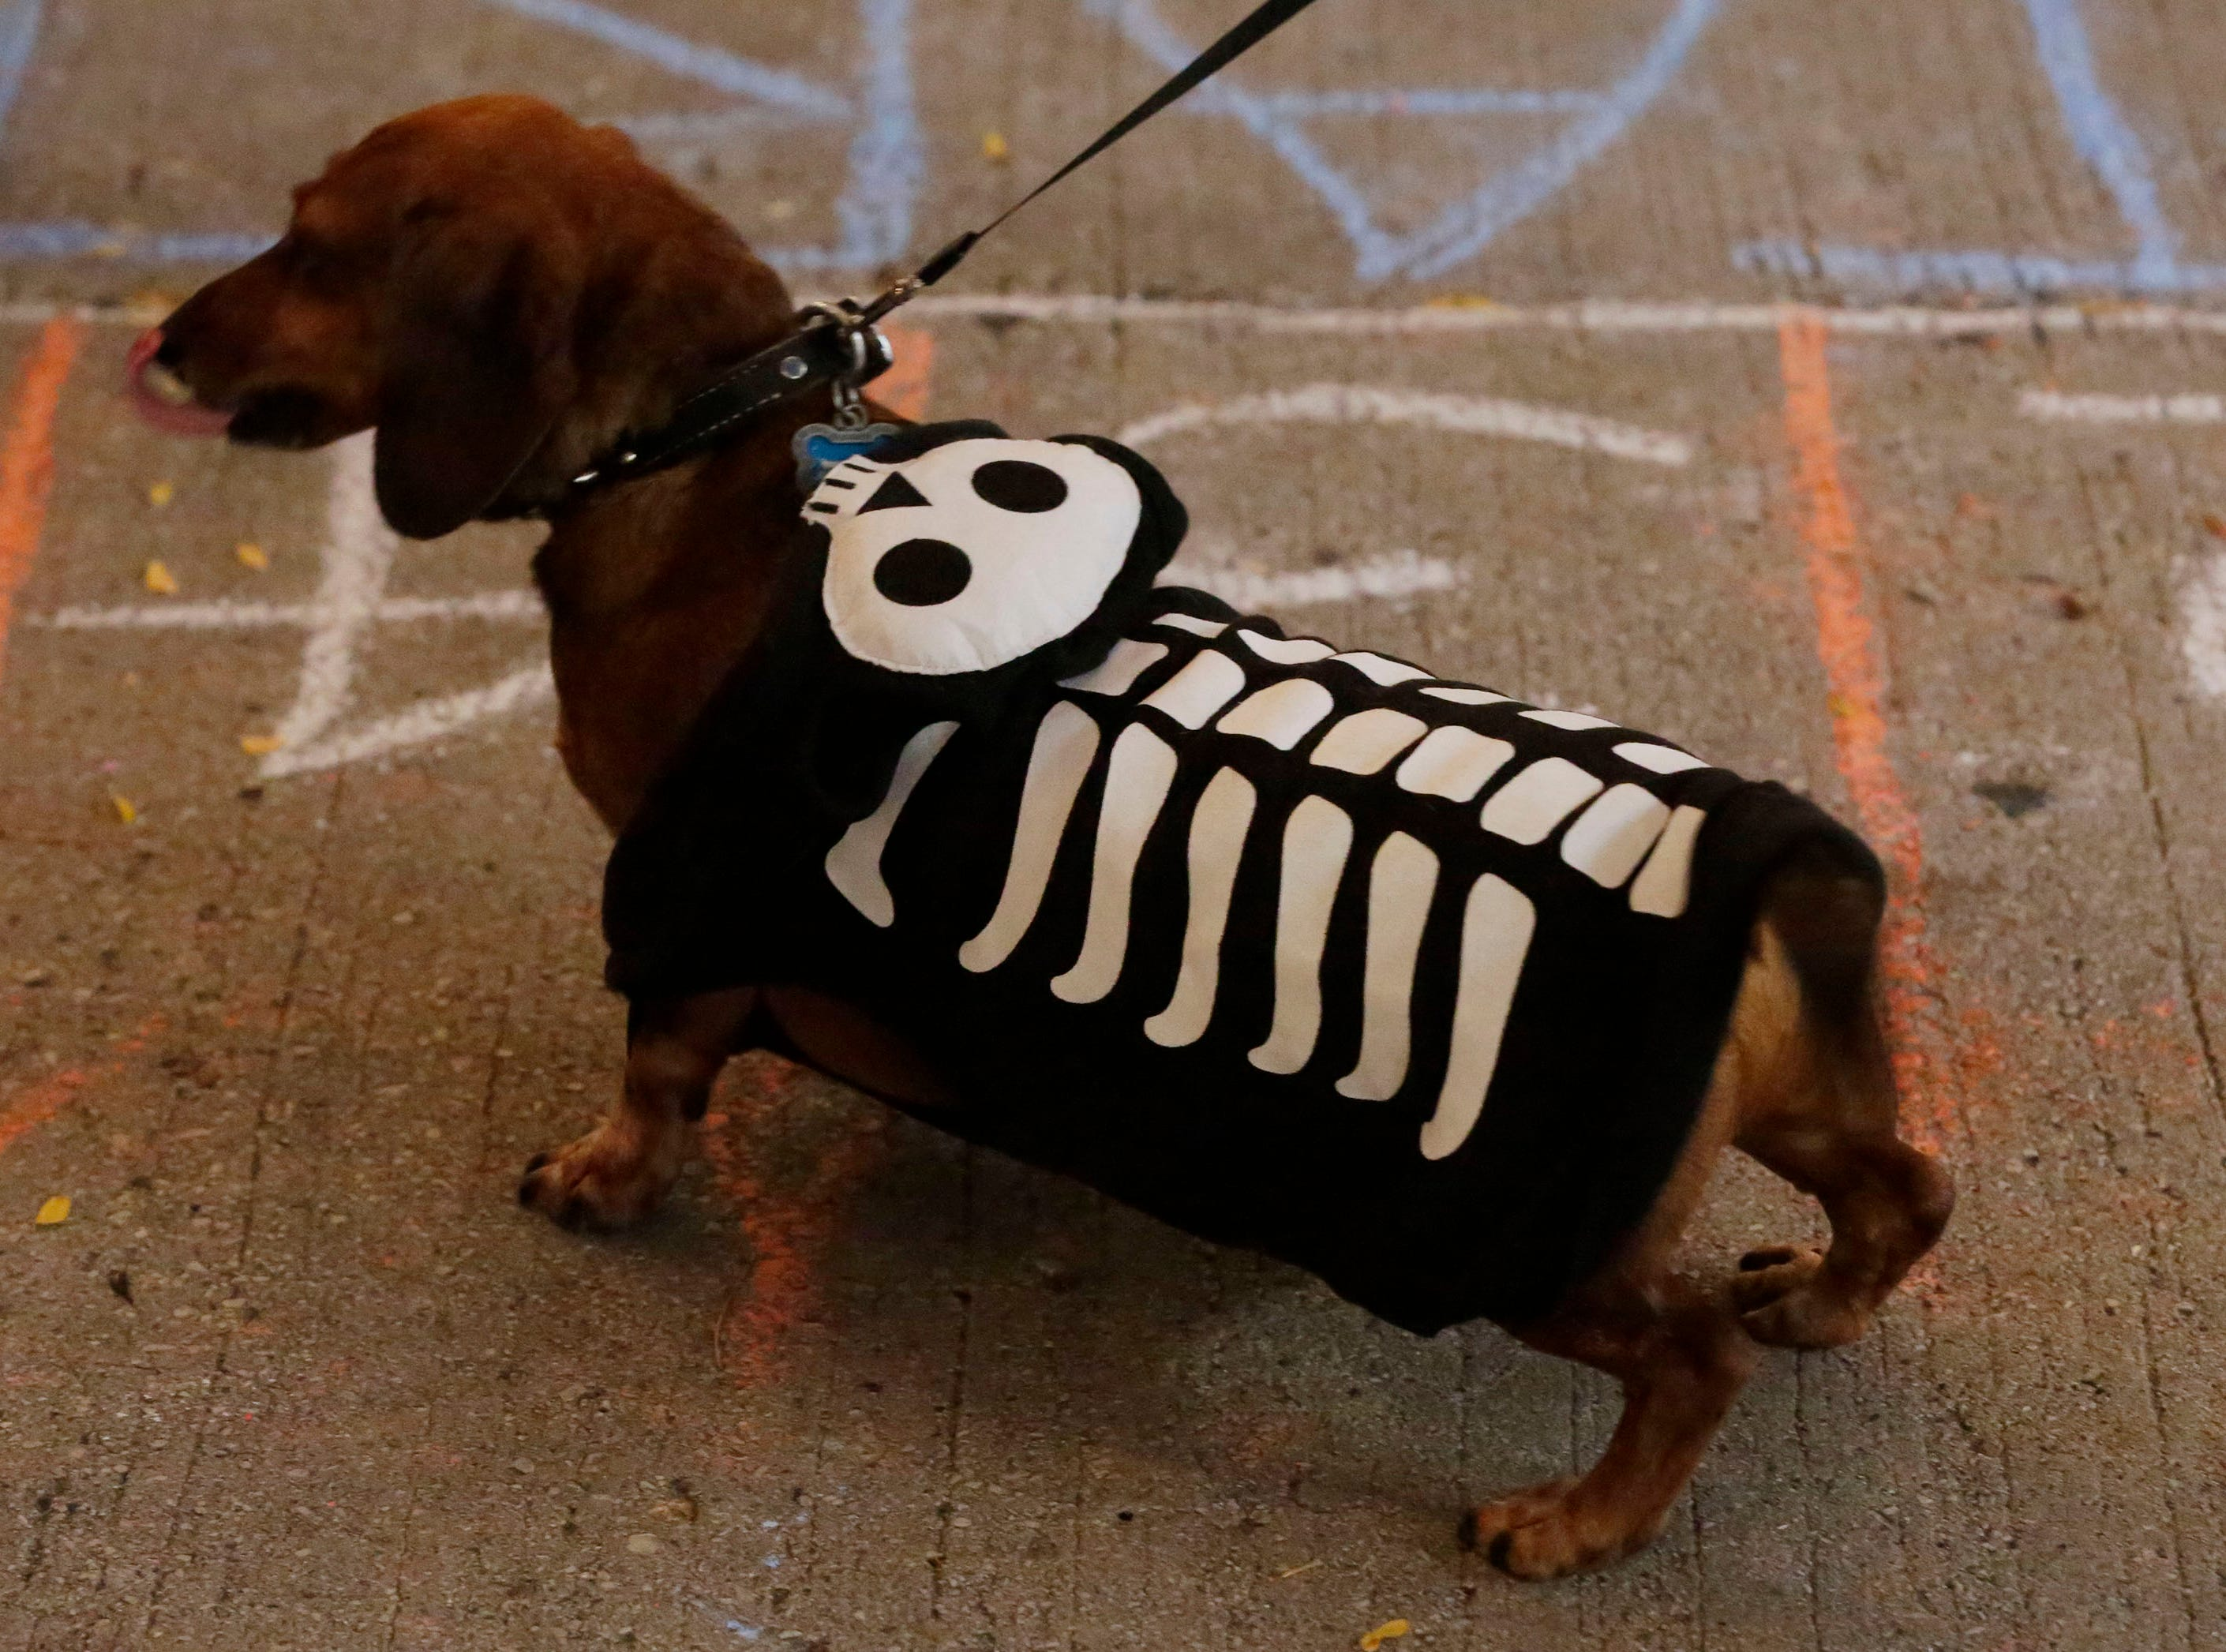 A dachshund is ready to scare up people at Al and Al's Oktoberfest, Saturday October 6, 2018, in Sheboygan, Wis.